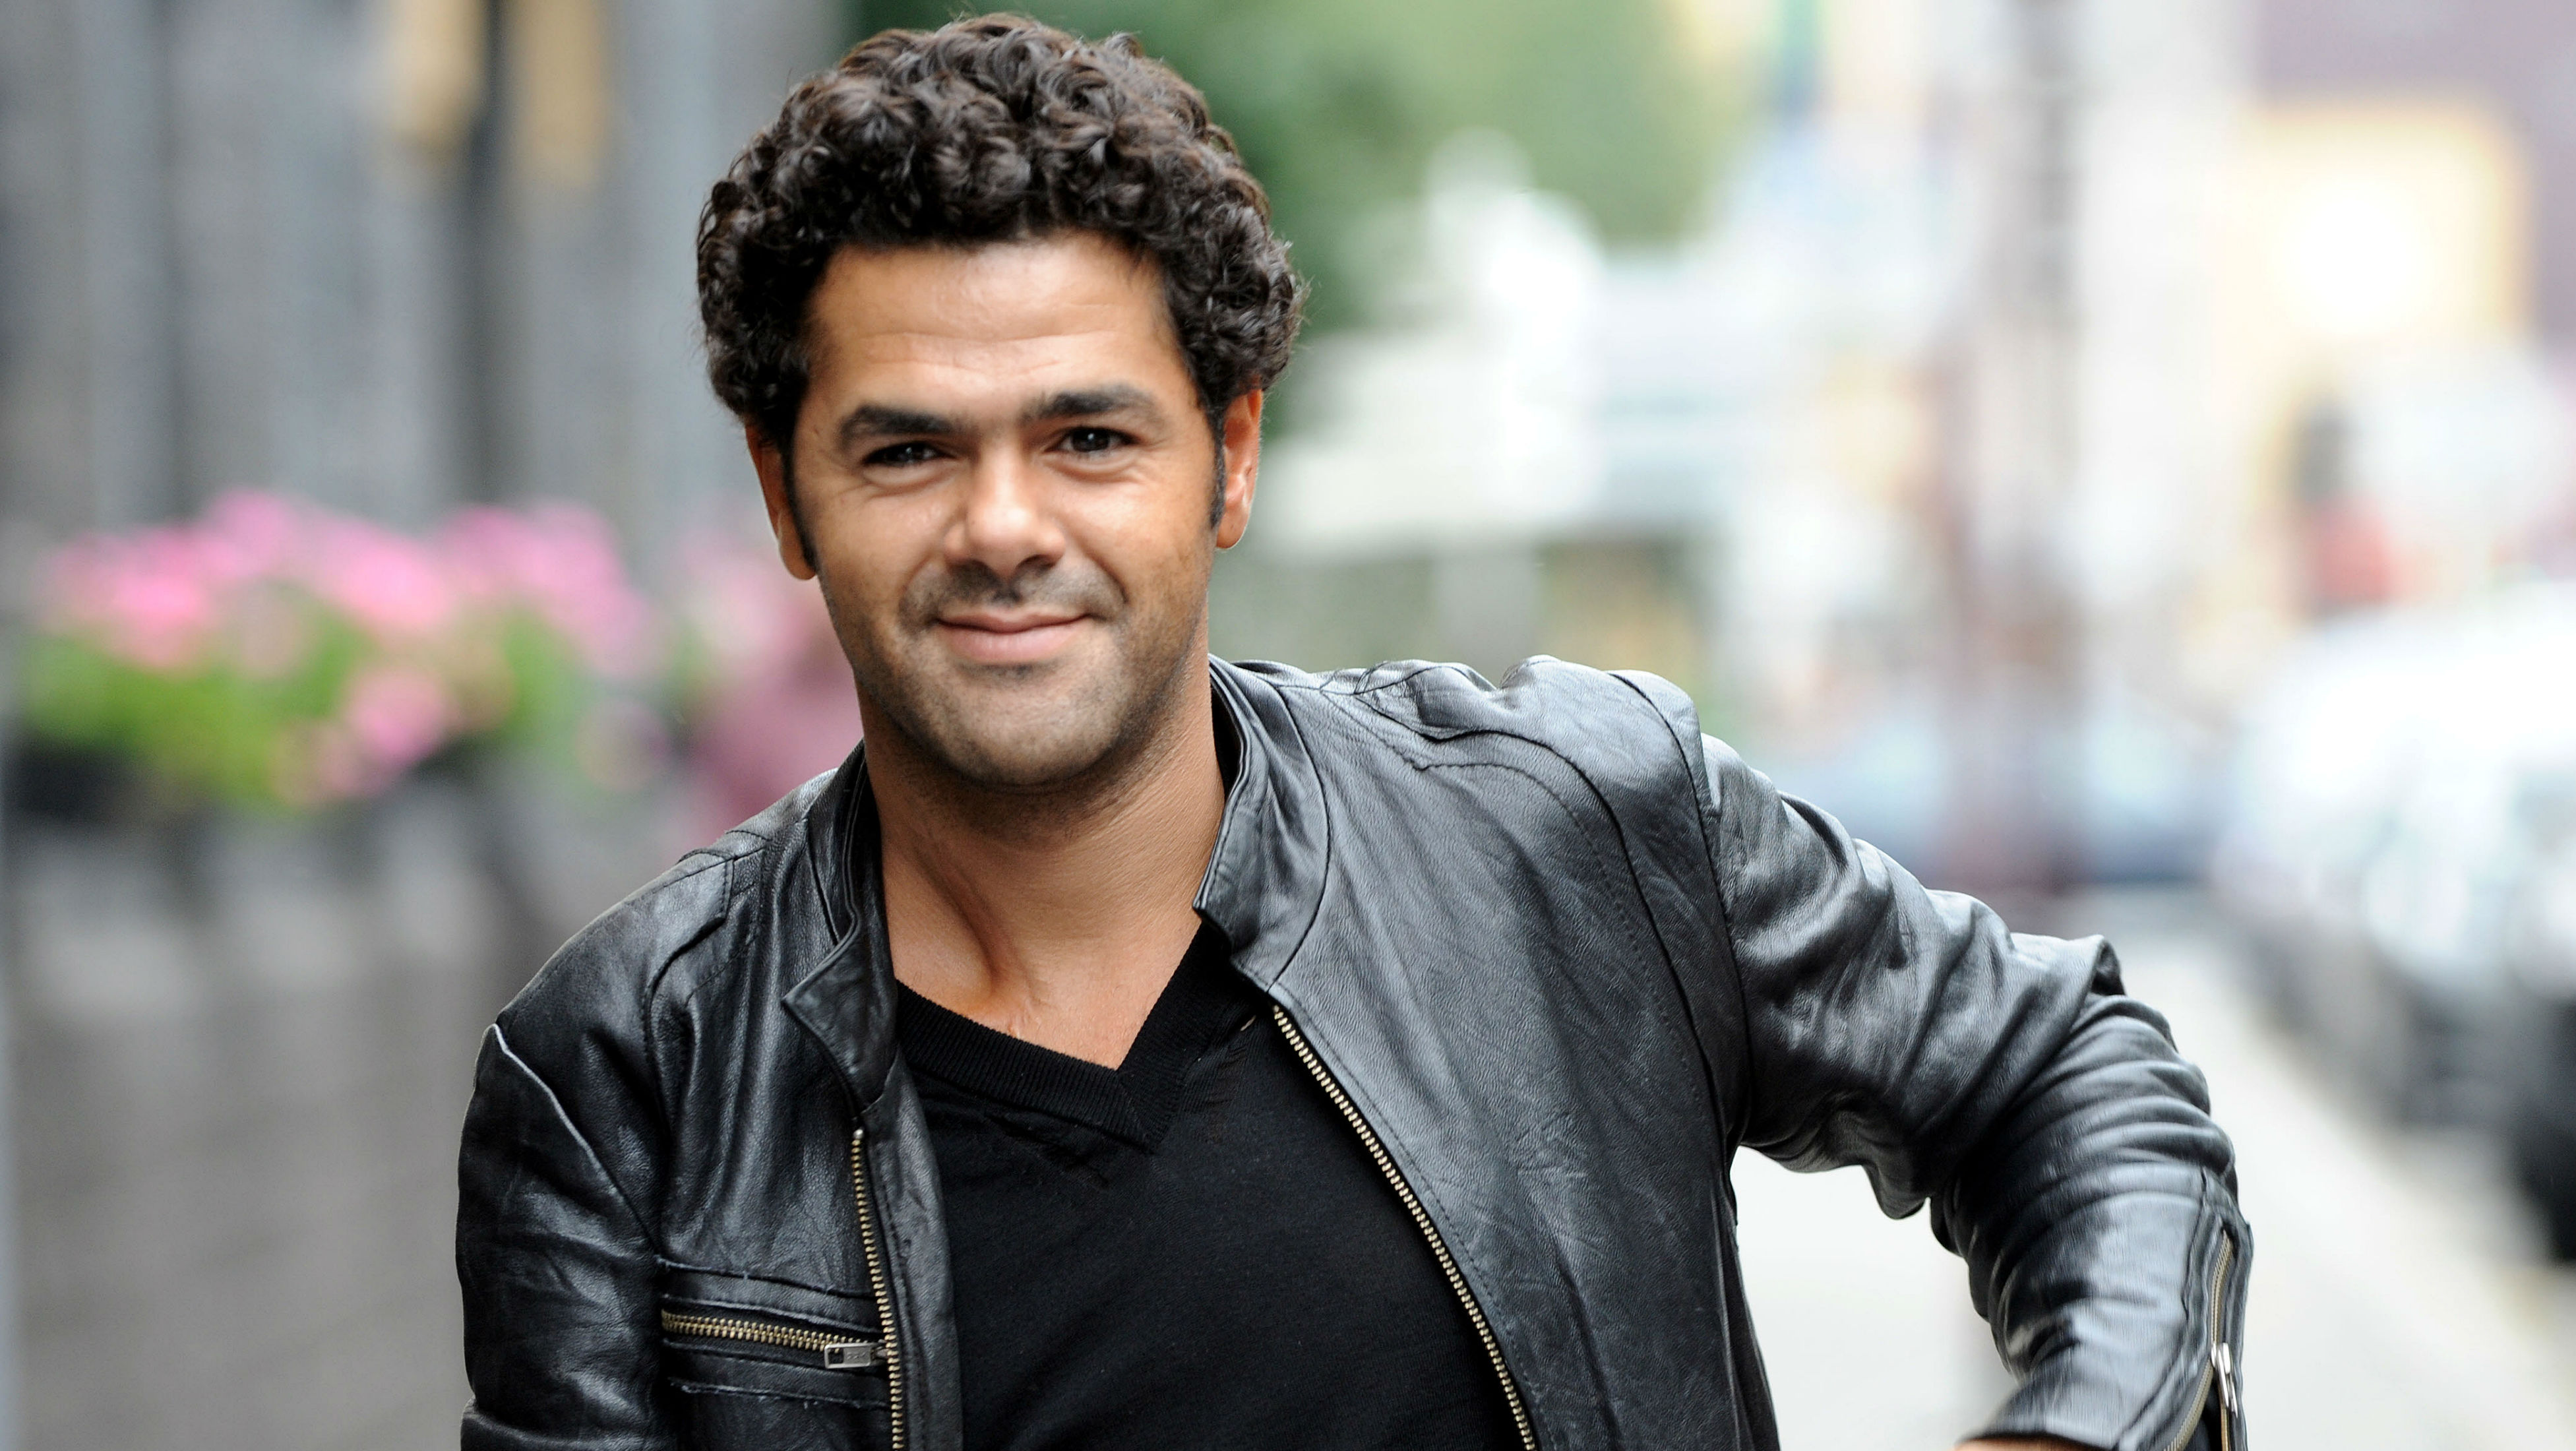 jamel debbouze youtube